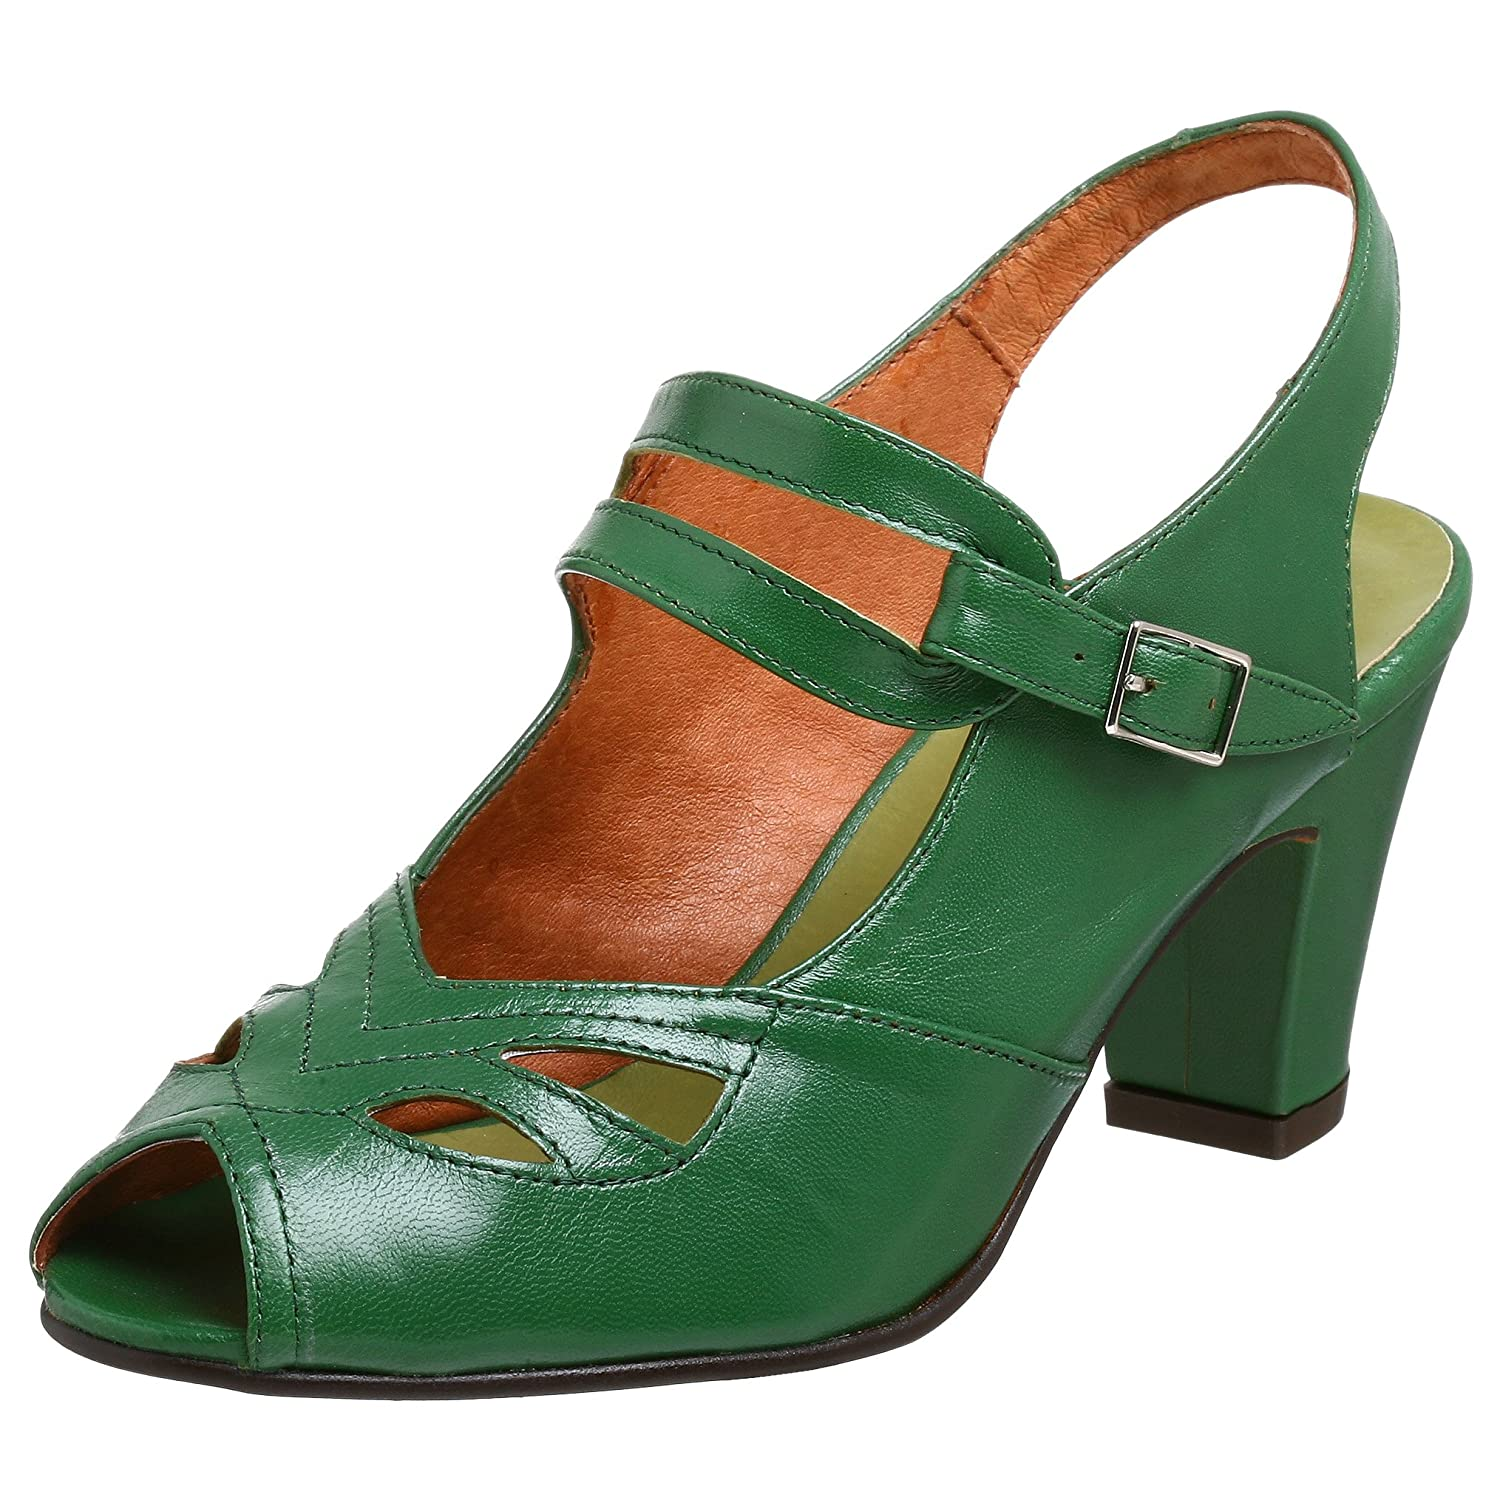 Re-Mix Vintage Women's Anita Sandal - Free Overnight Shipping & Return Shipping: Endless.com from endless.com